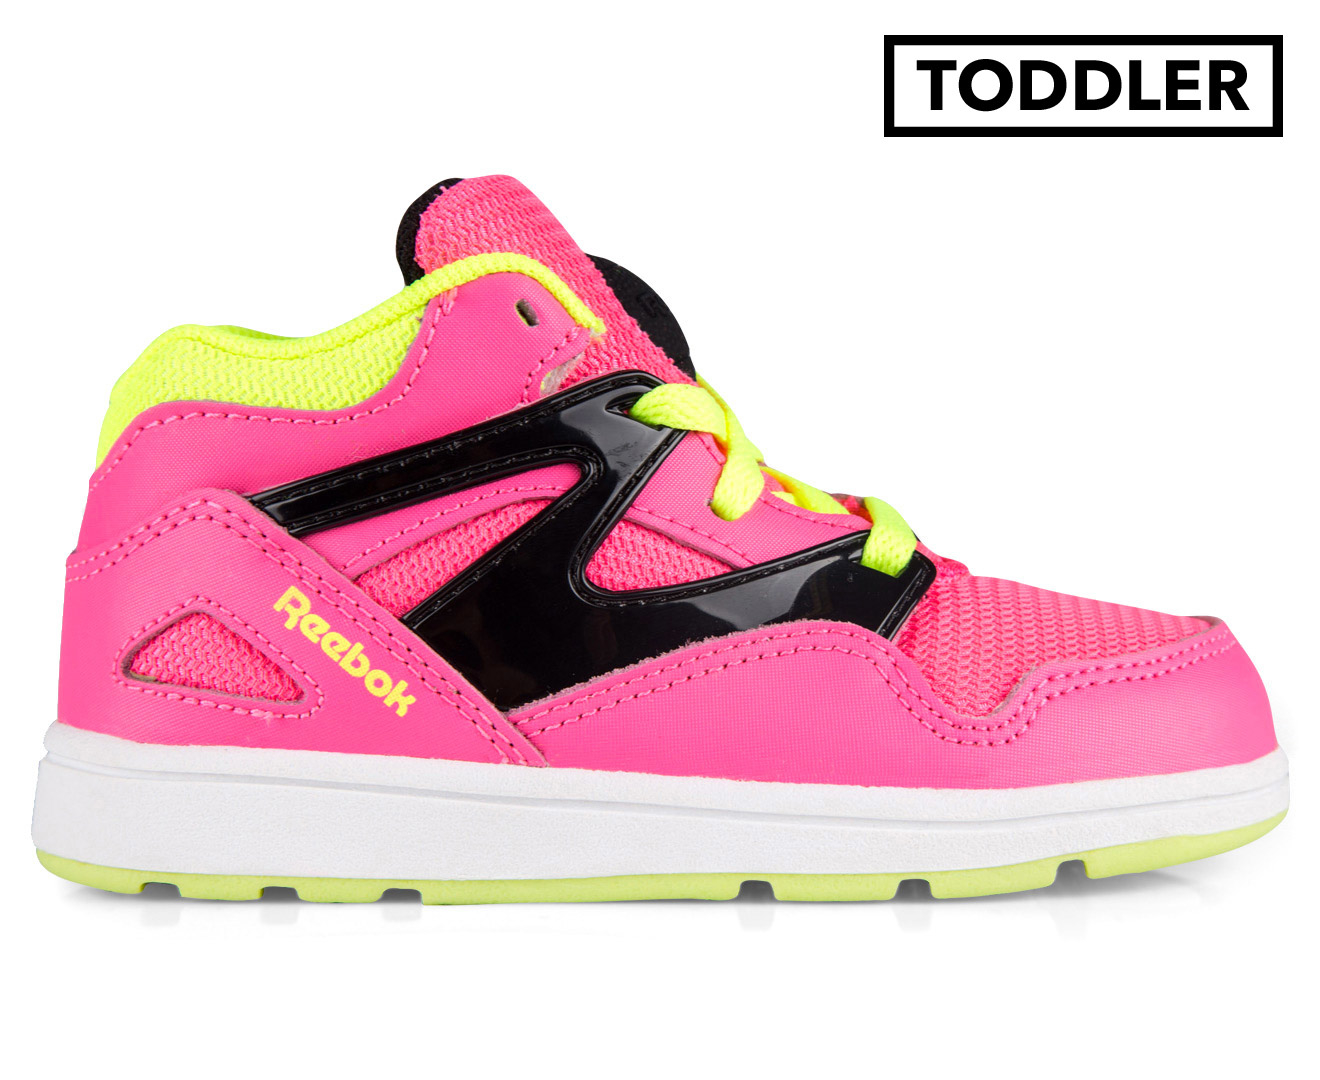 06d9aa5c9e1818 Reebok Toddler  Versa Pump Omni Lite Shoe - Pink Black Yellow White ...